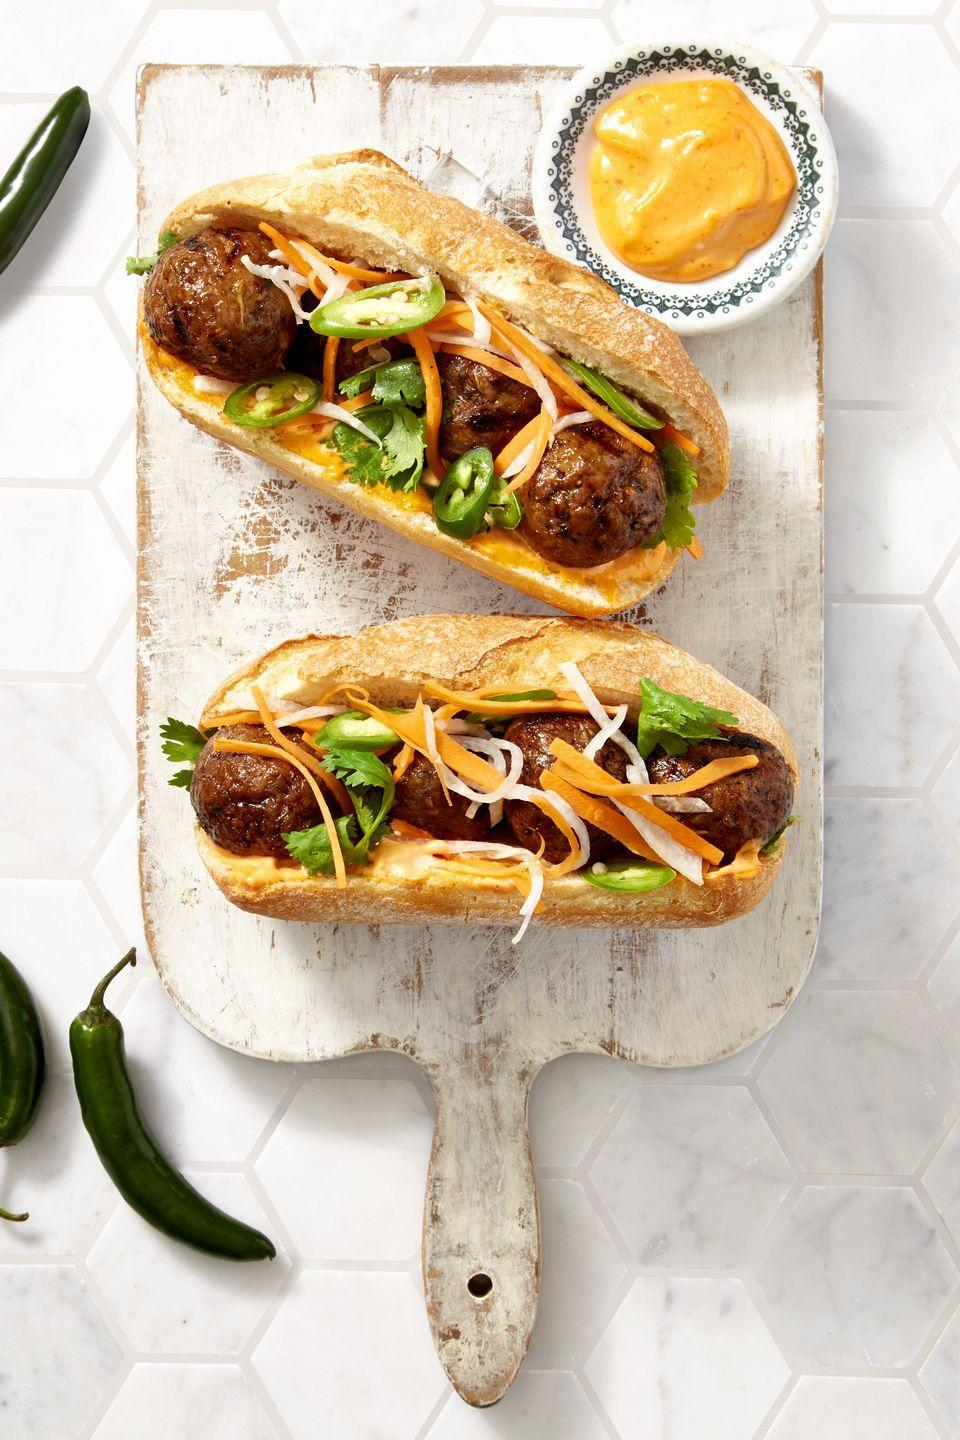 "<p>Ground pork makes for more flavorful, tender meatballs than just beef alone. Add some mint, lemongrass, fish sauce and Sriracha to the mix to really make your taste buds do a little dance.</p><p><a href=""https://www.goodhousekeeping.com/food-recipes/a39934/sriracha-meatball-hoagies-recipe/"" rel=""nofollow noopener"" target=""_blank"" data-ylk=""slk:Get the recipe for Sriracha Meatball Hoagies »"" class=""link rapid-noclick-resp""><em>Get the recipe for Sriracha Meatball Hoagies »</em></a></p>"